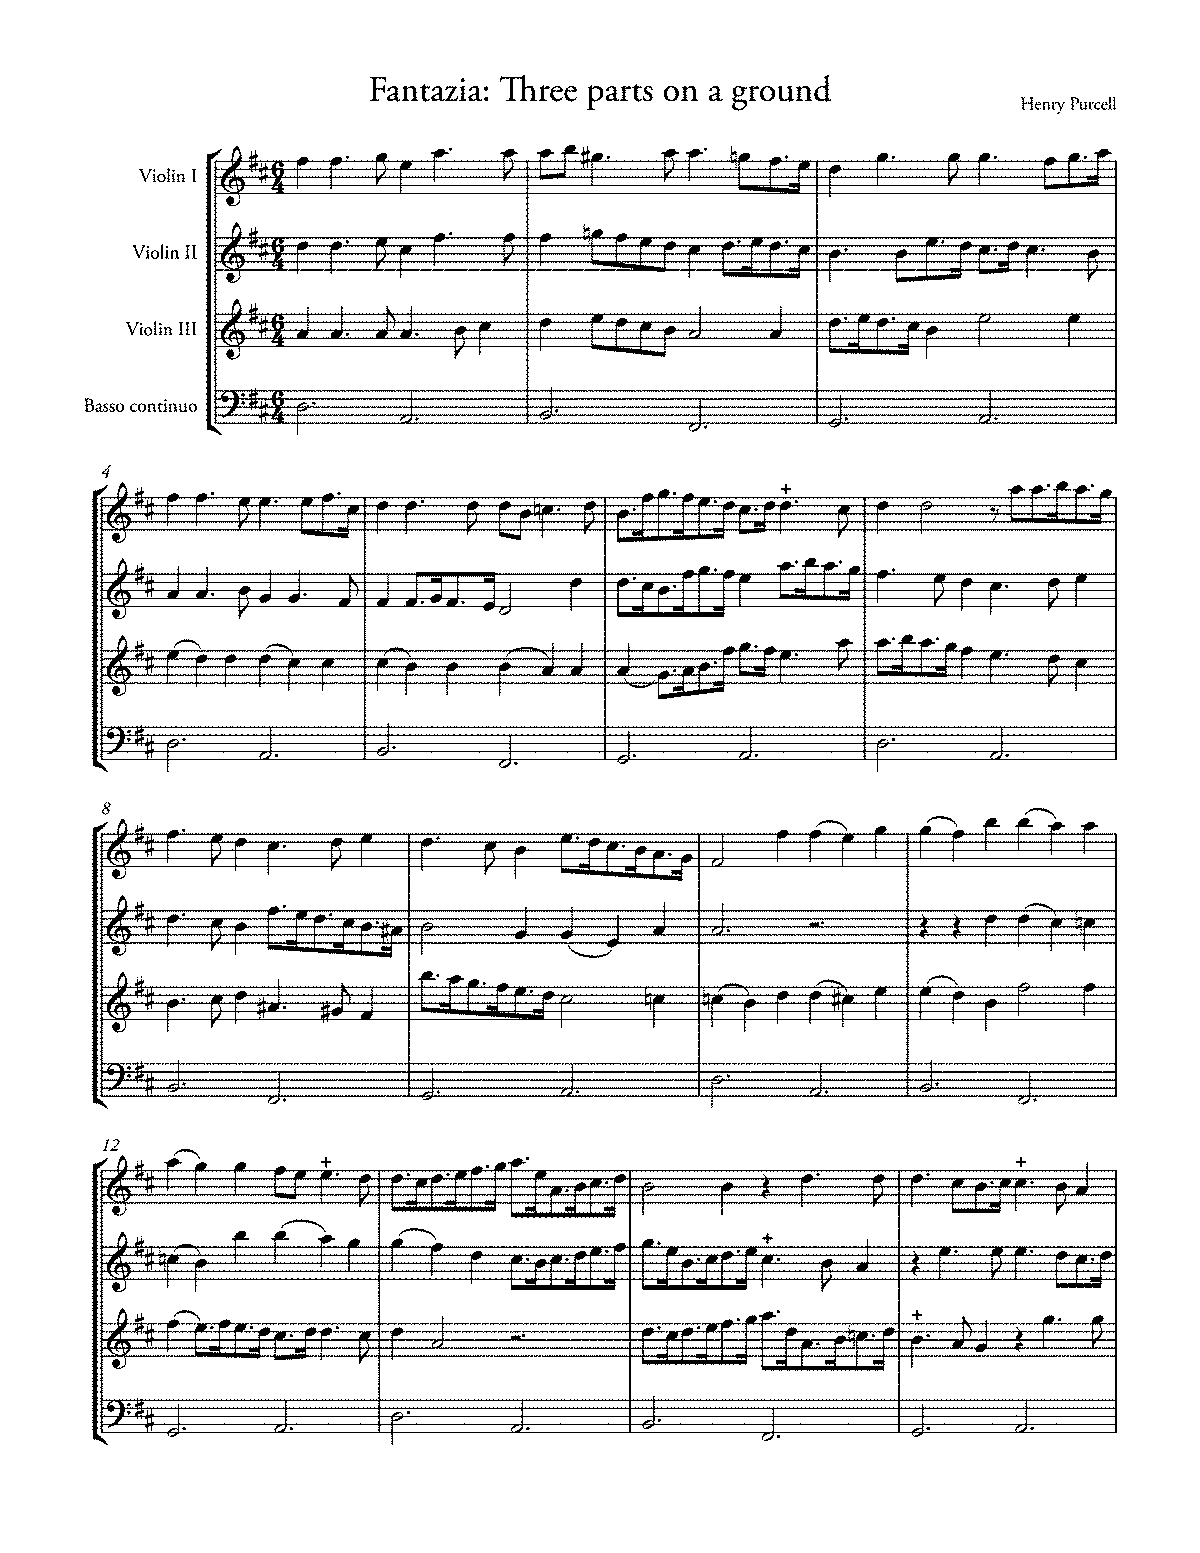 Purcell fantazia 3 parts on a ground.pdf